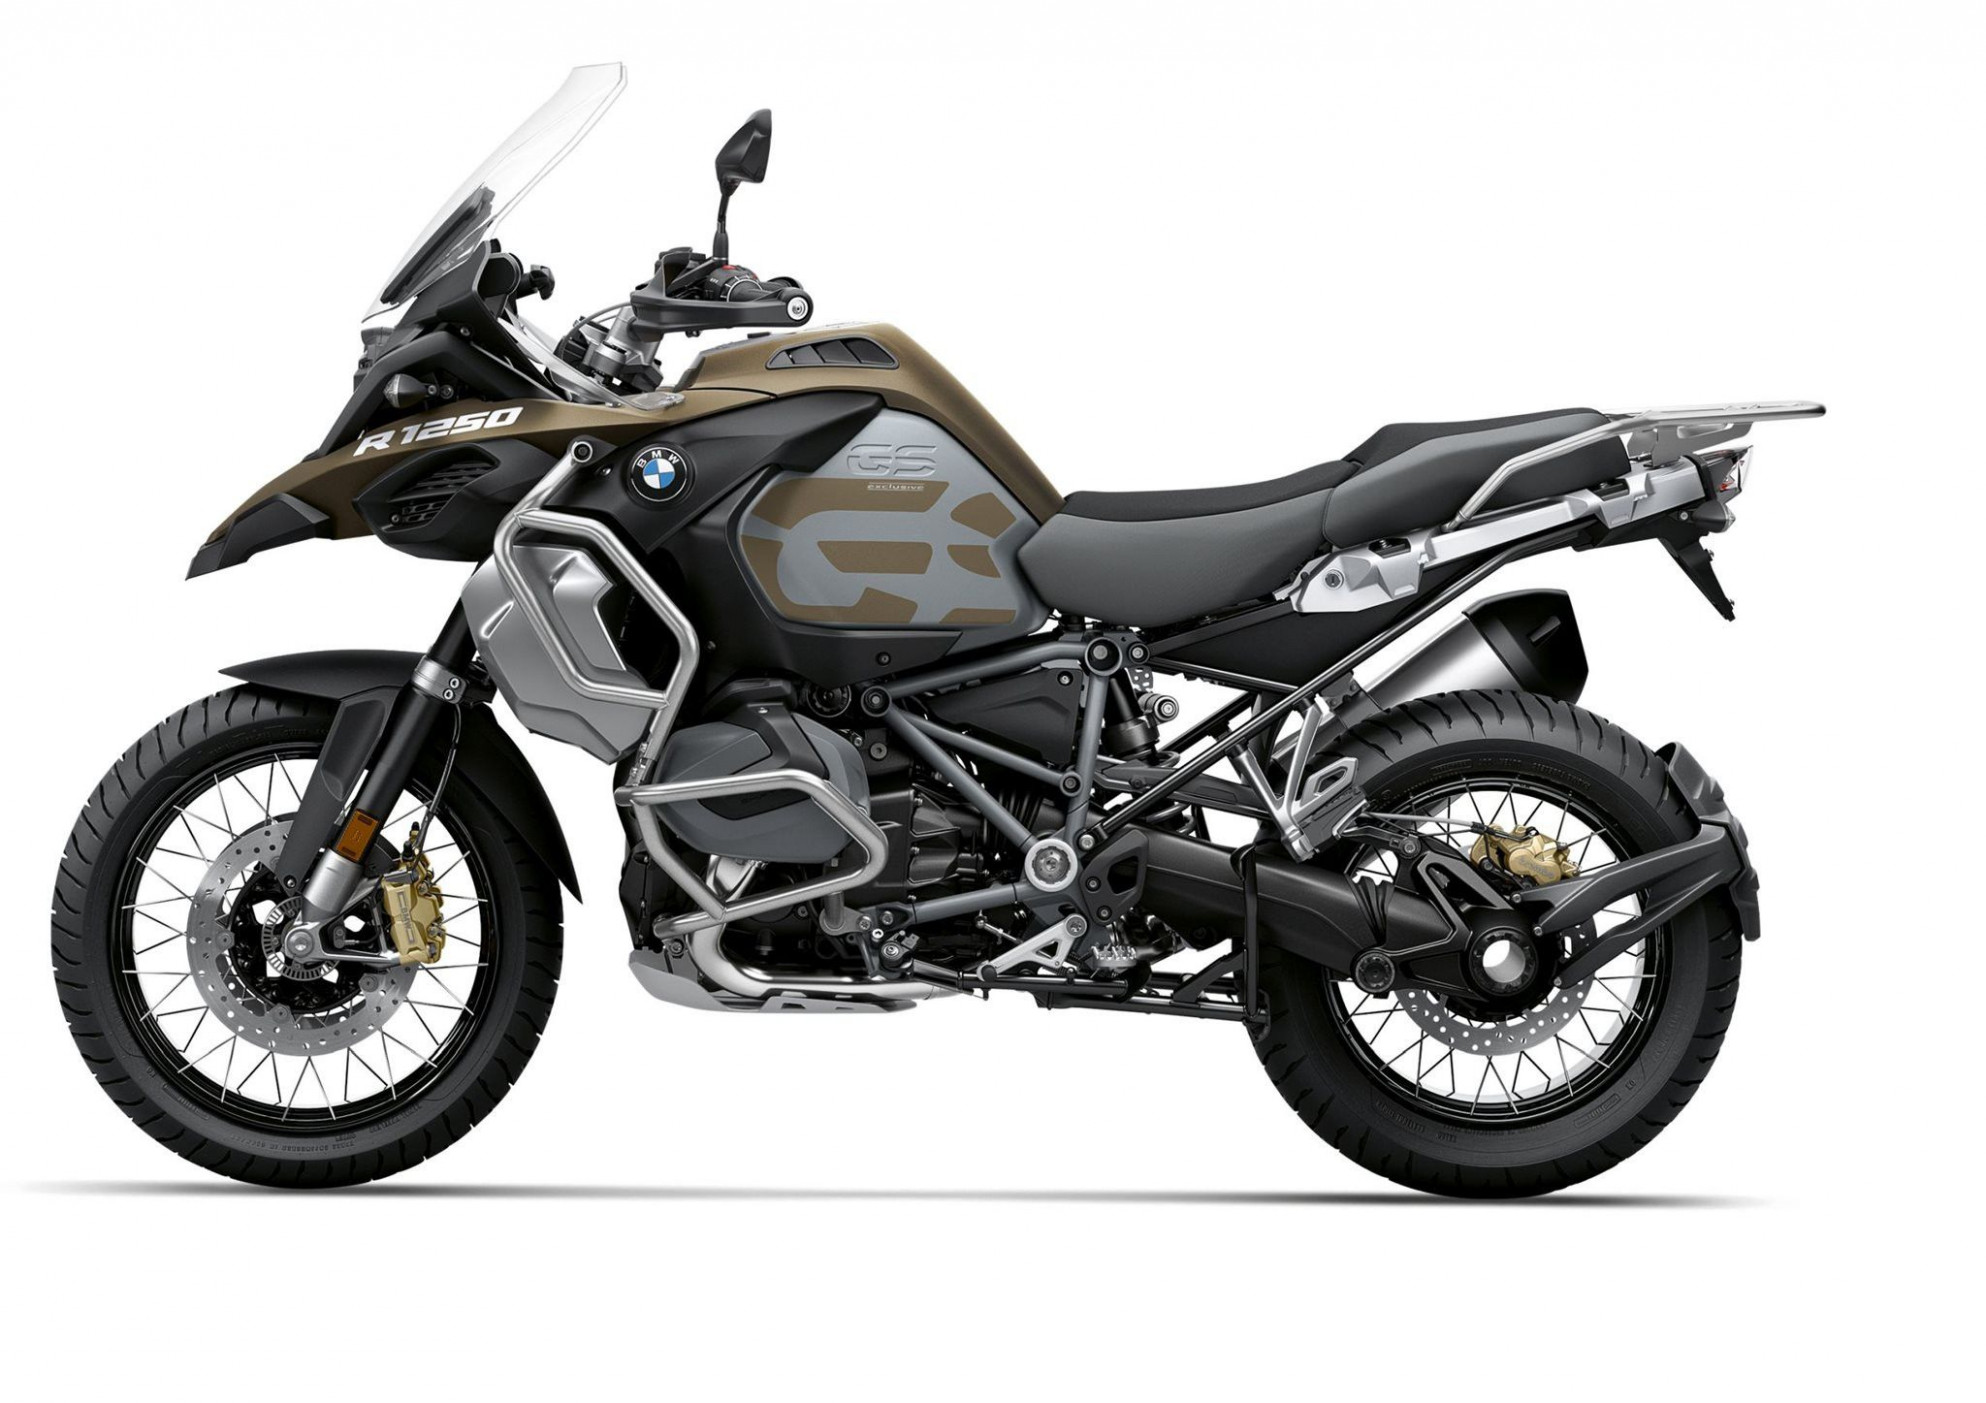 Bmw R6Gs 6 EngineCar Update 6 in 6 (With images) | Bmw ...